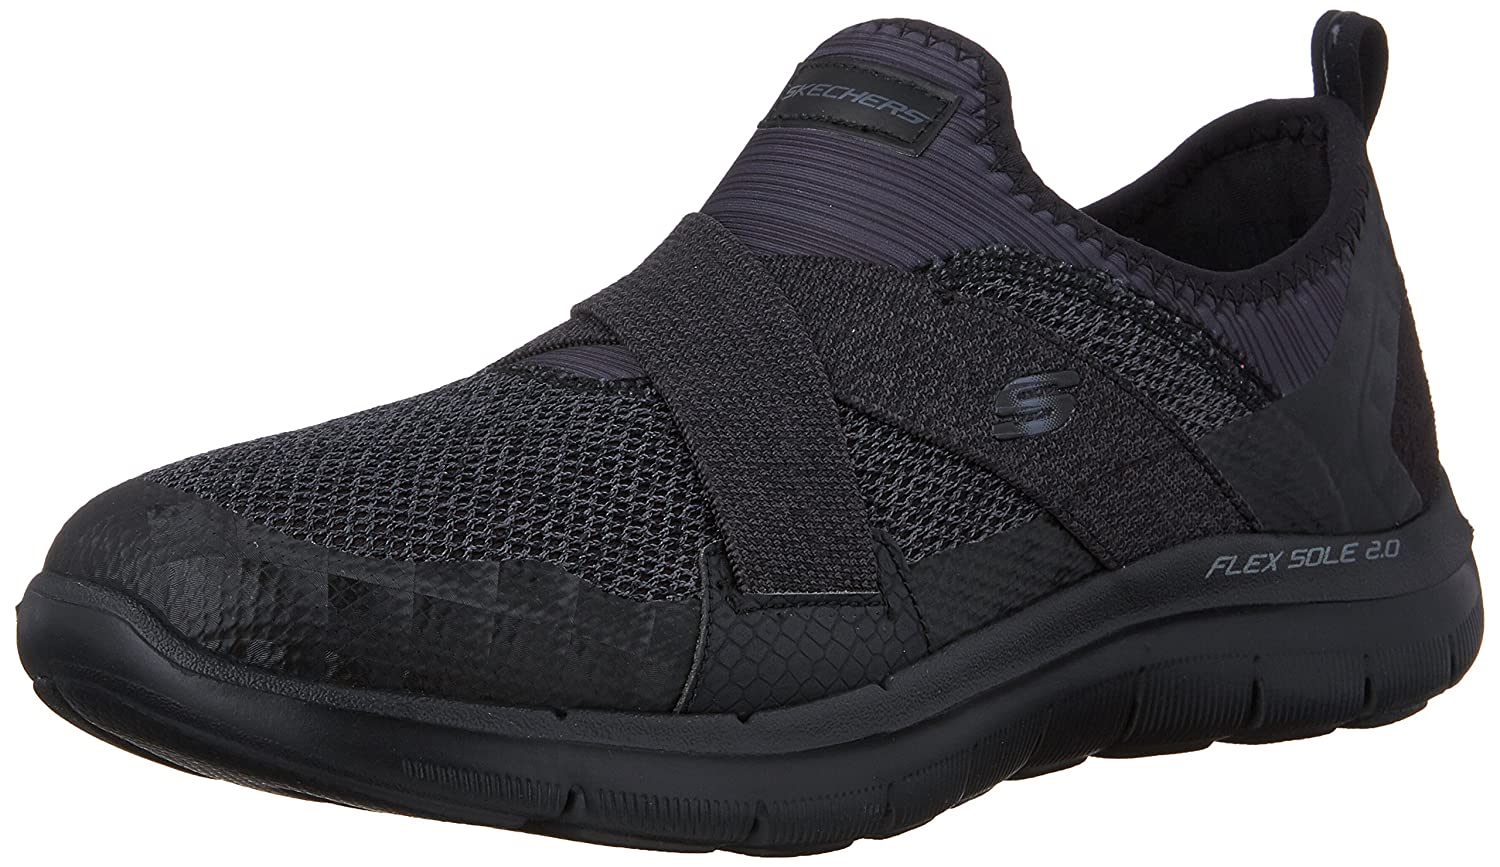 Skechers Women's Flex Appeal New Image Sneaker B01DBWGCMI 8 B(M) US|black / black